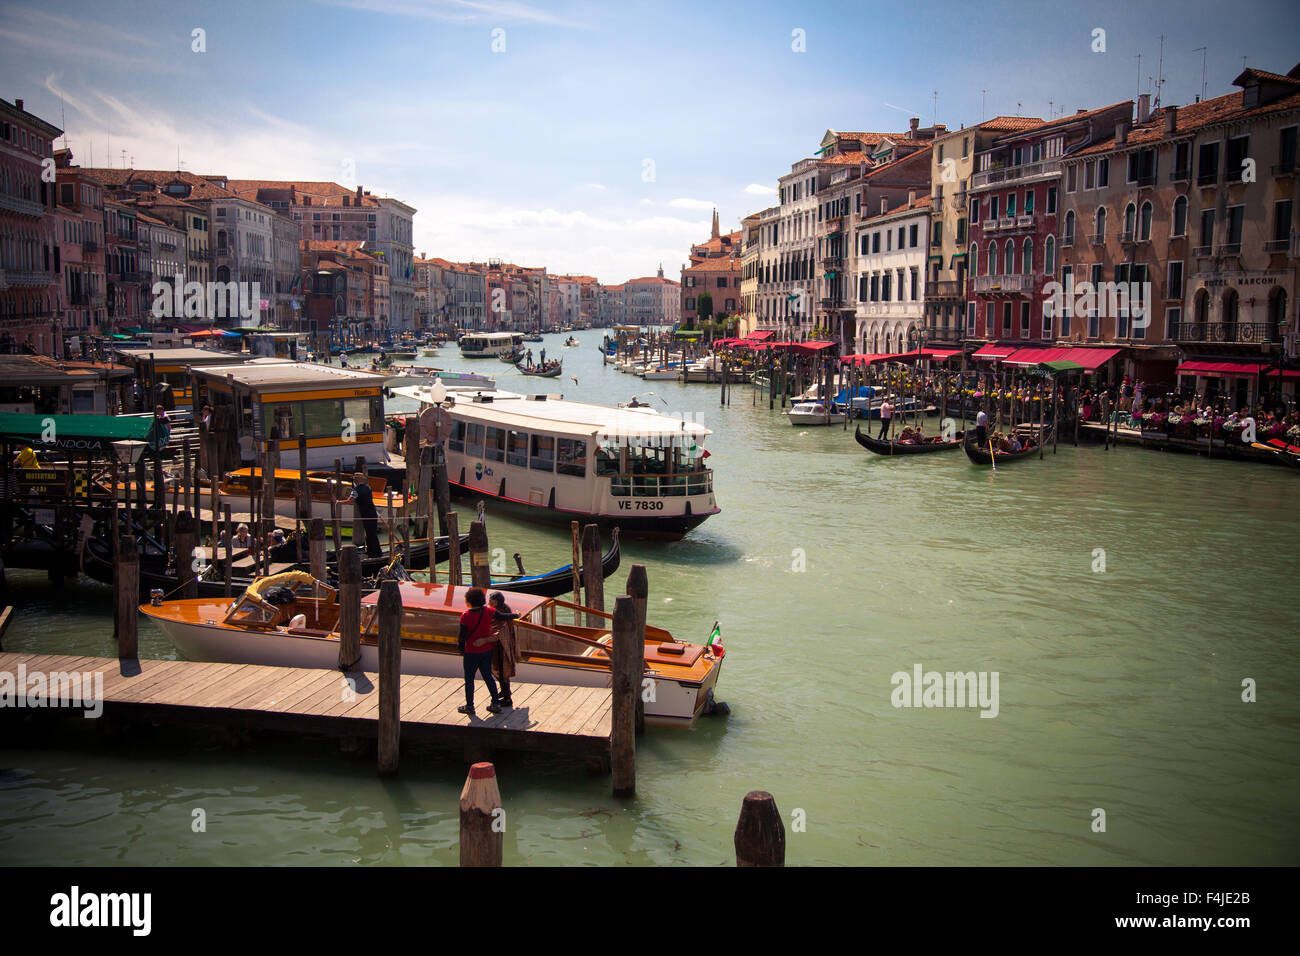 Boats on Canal Grande in Venice Italy - Stock Image